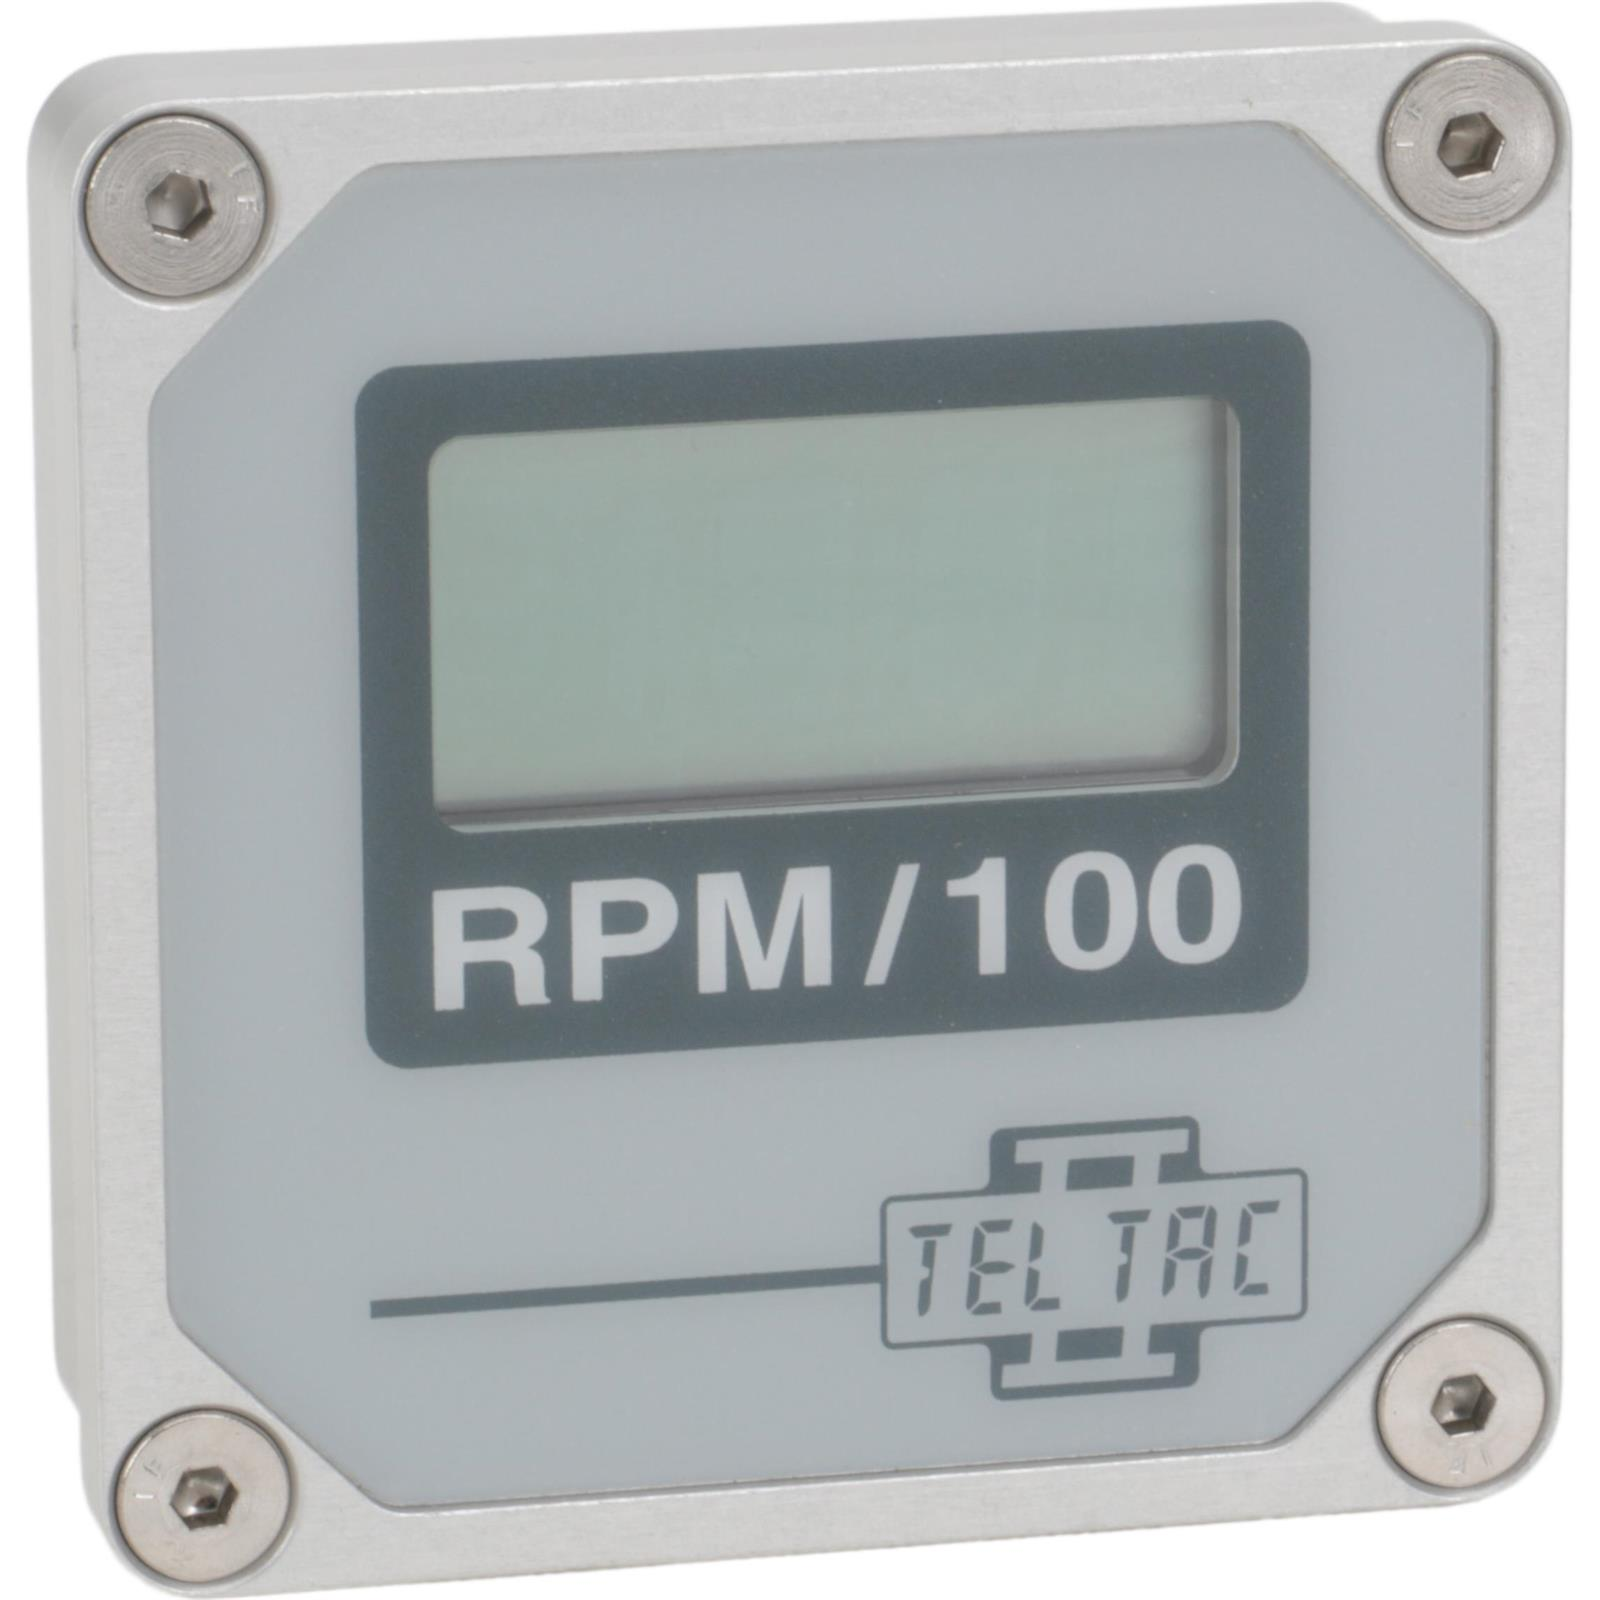 91082020_L1600_7f284c31 c755 424d 84e4 f21cf1b6c82d tel tac ii digital tachometer tel tach wiring diagram at reclaimingppi.co